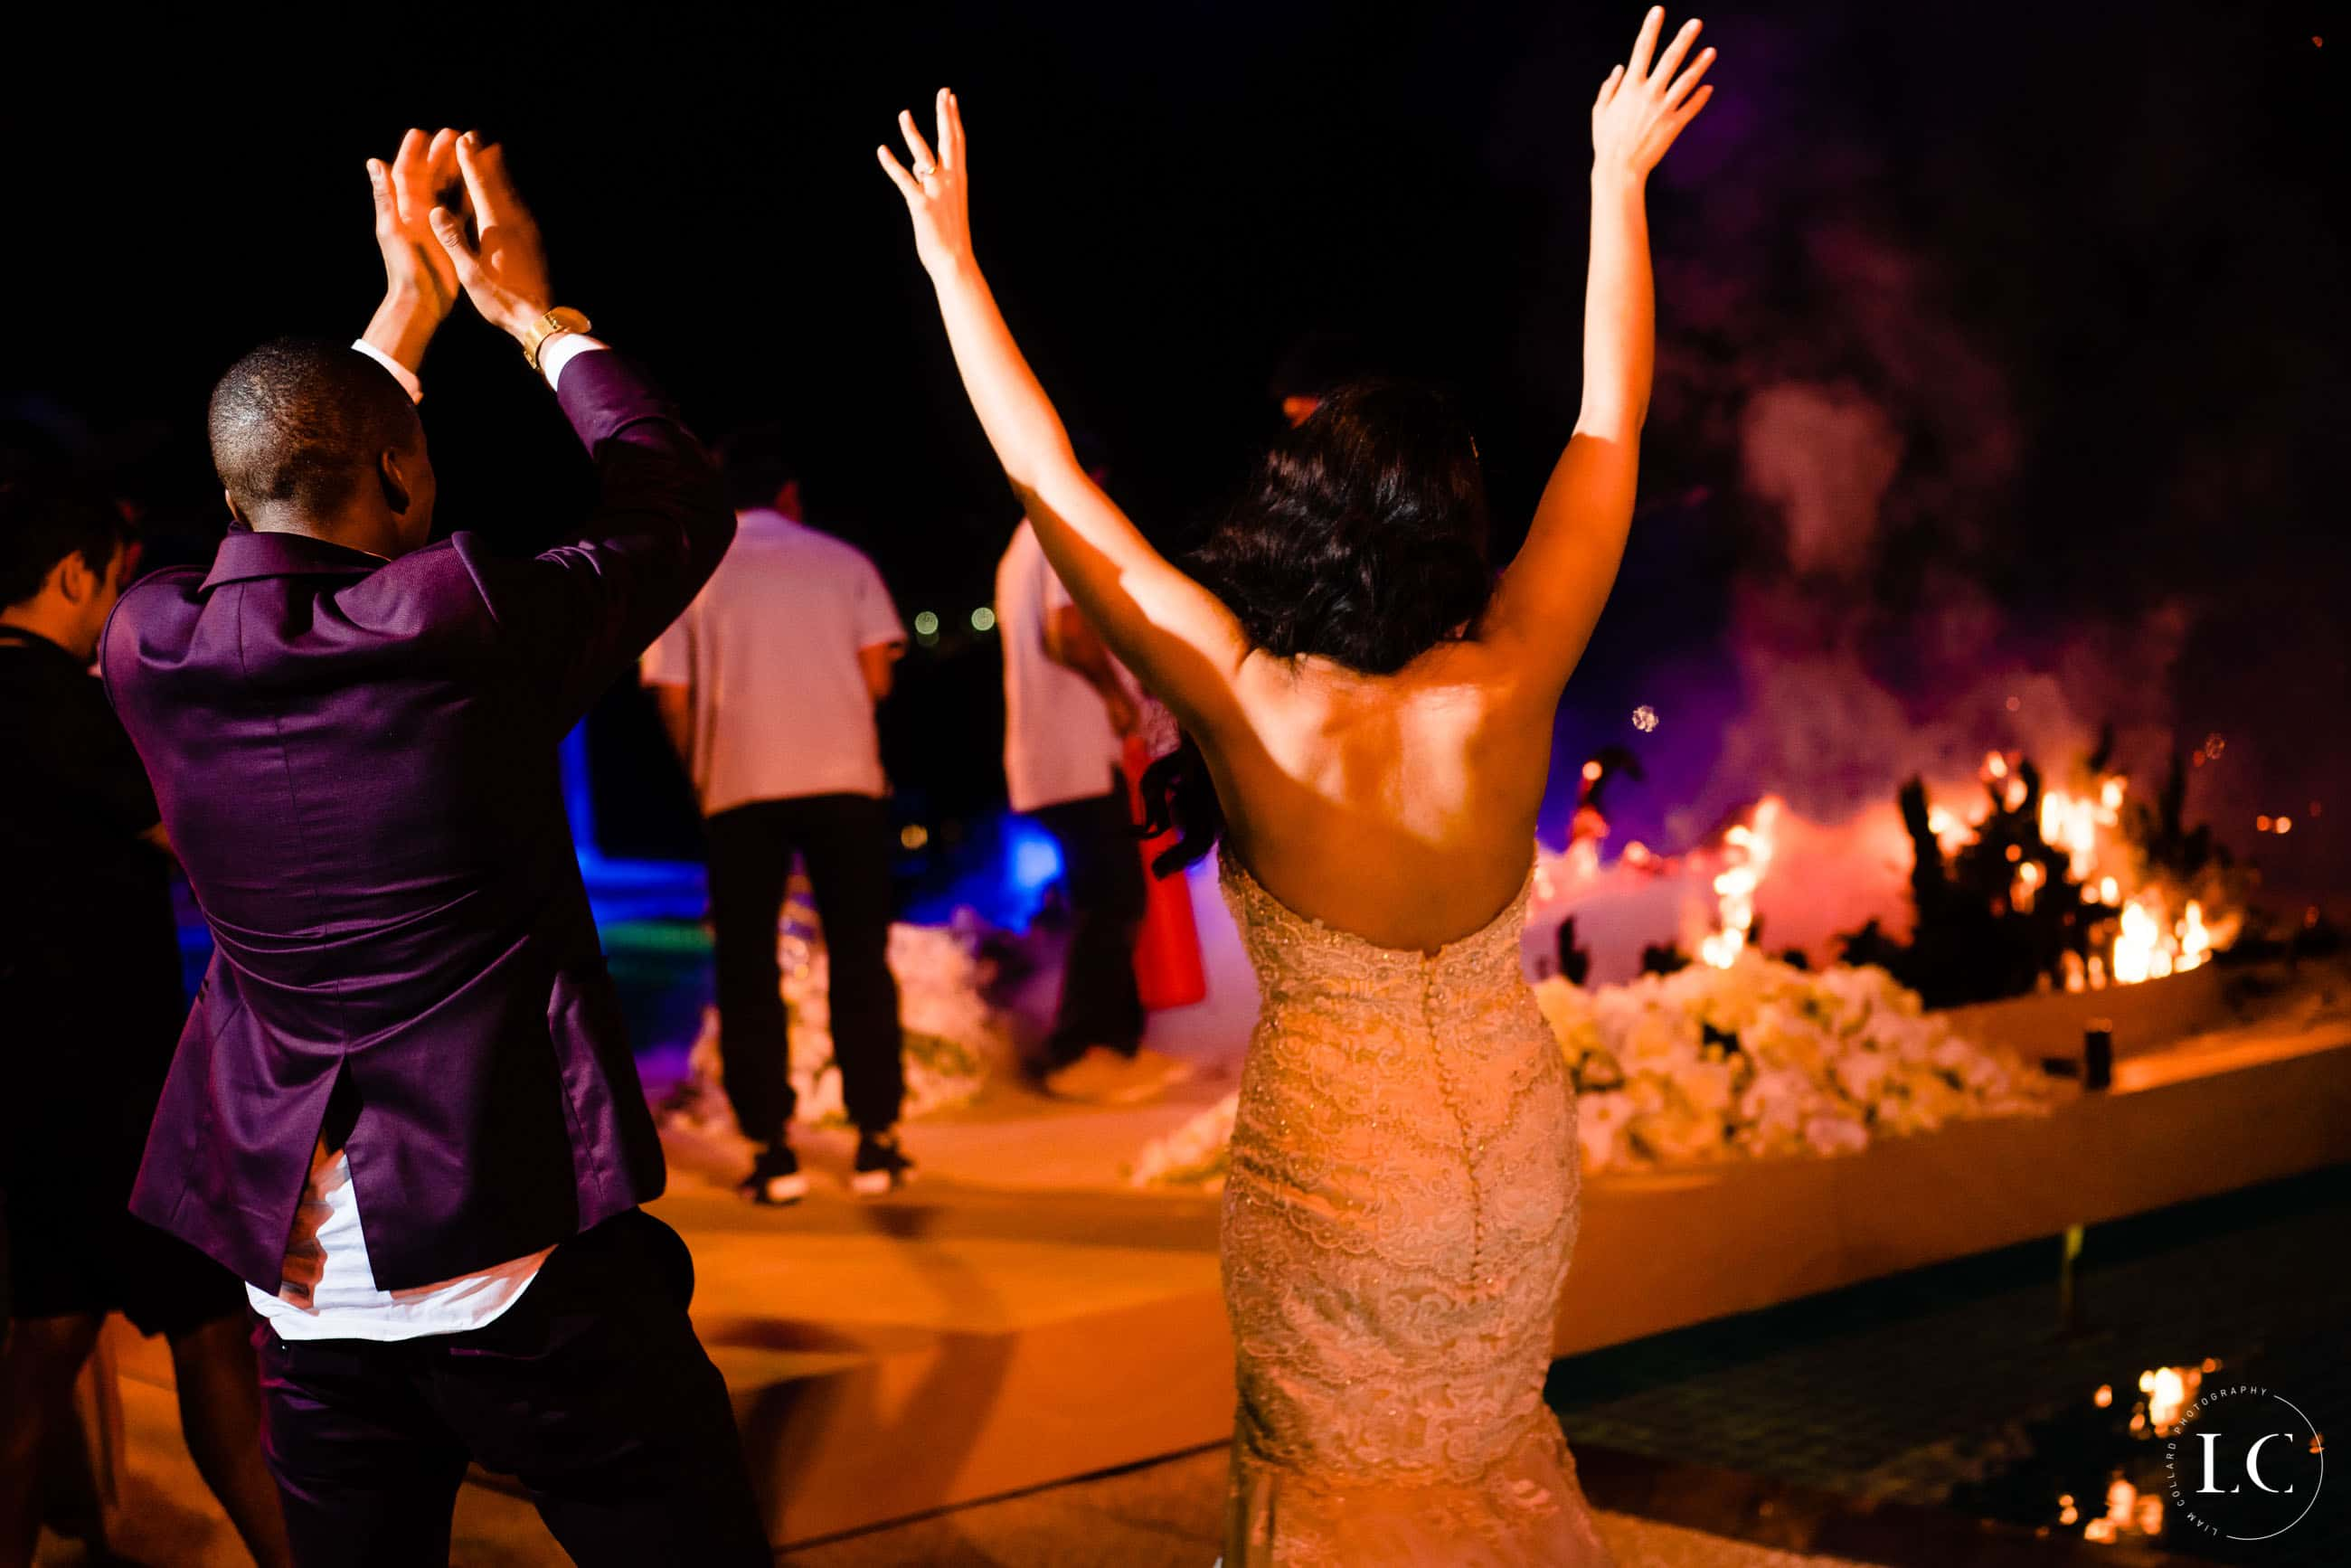 Dancing at reception, bride with arms up